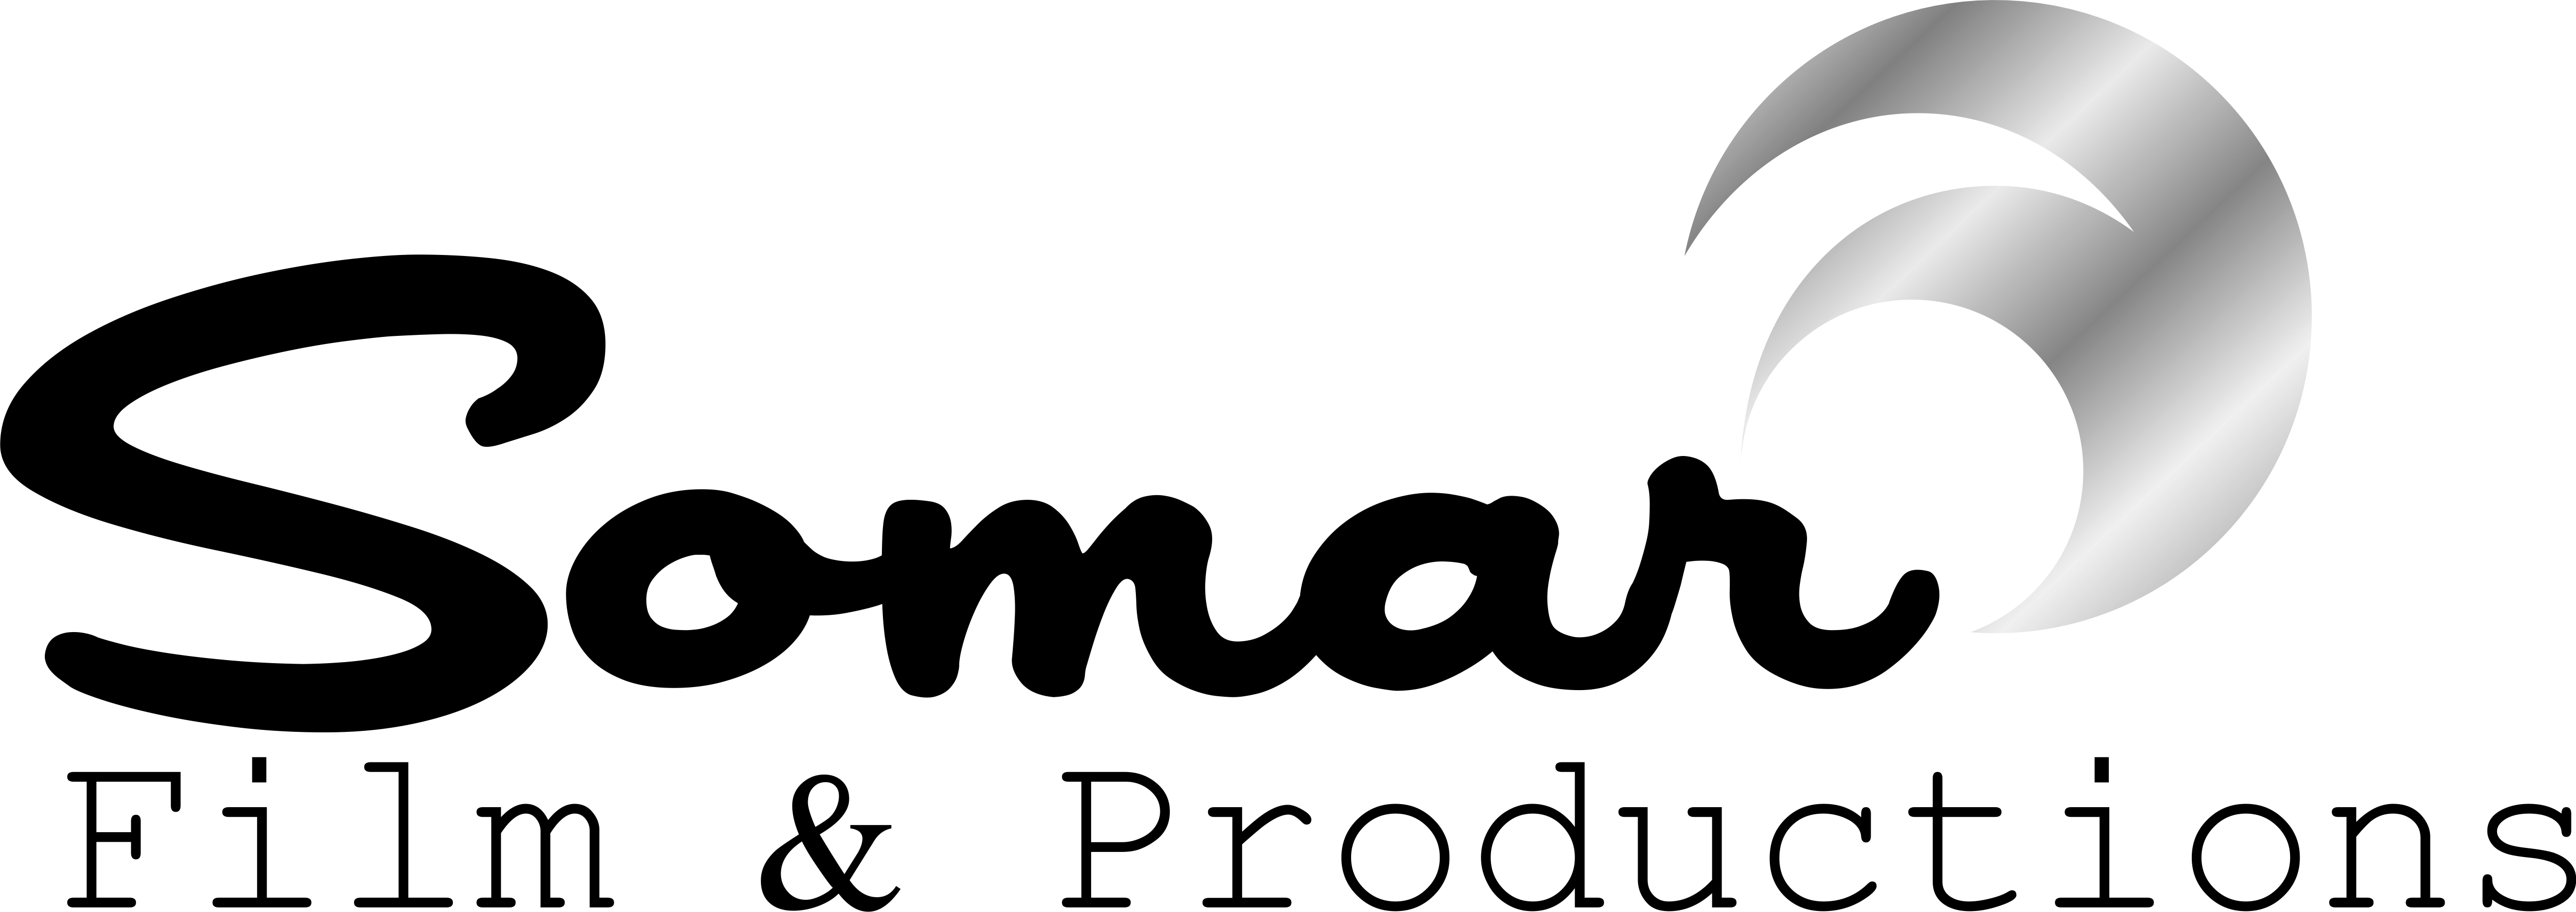 Somar Film & Productions